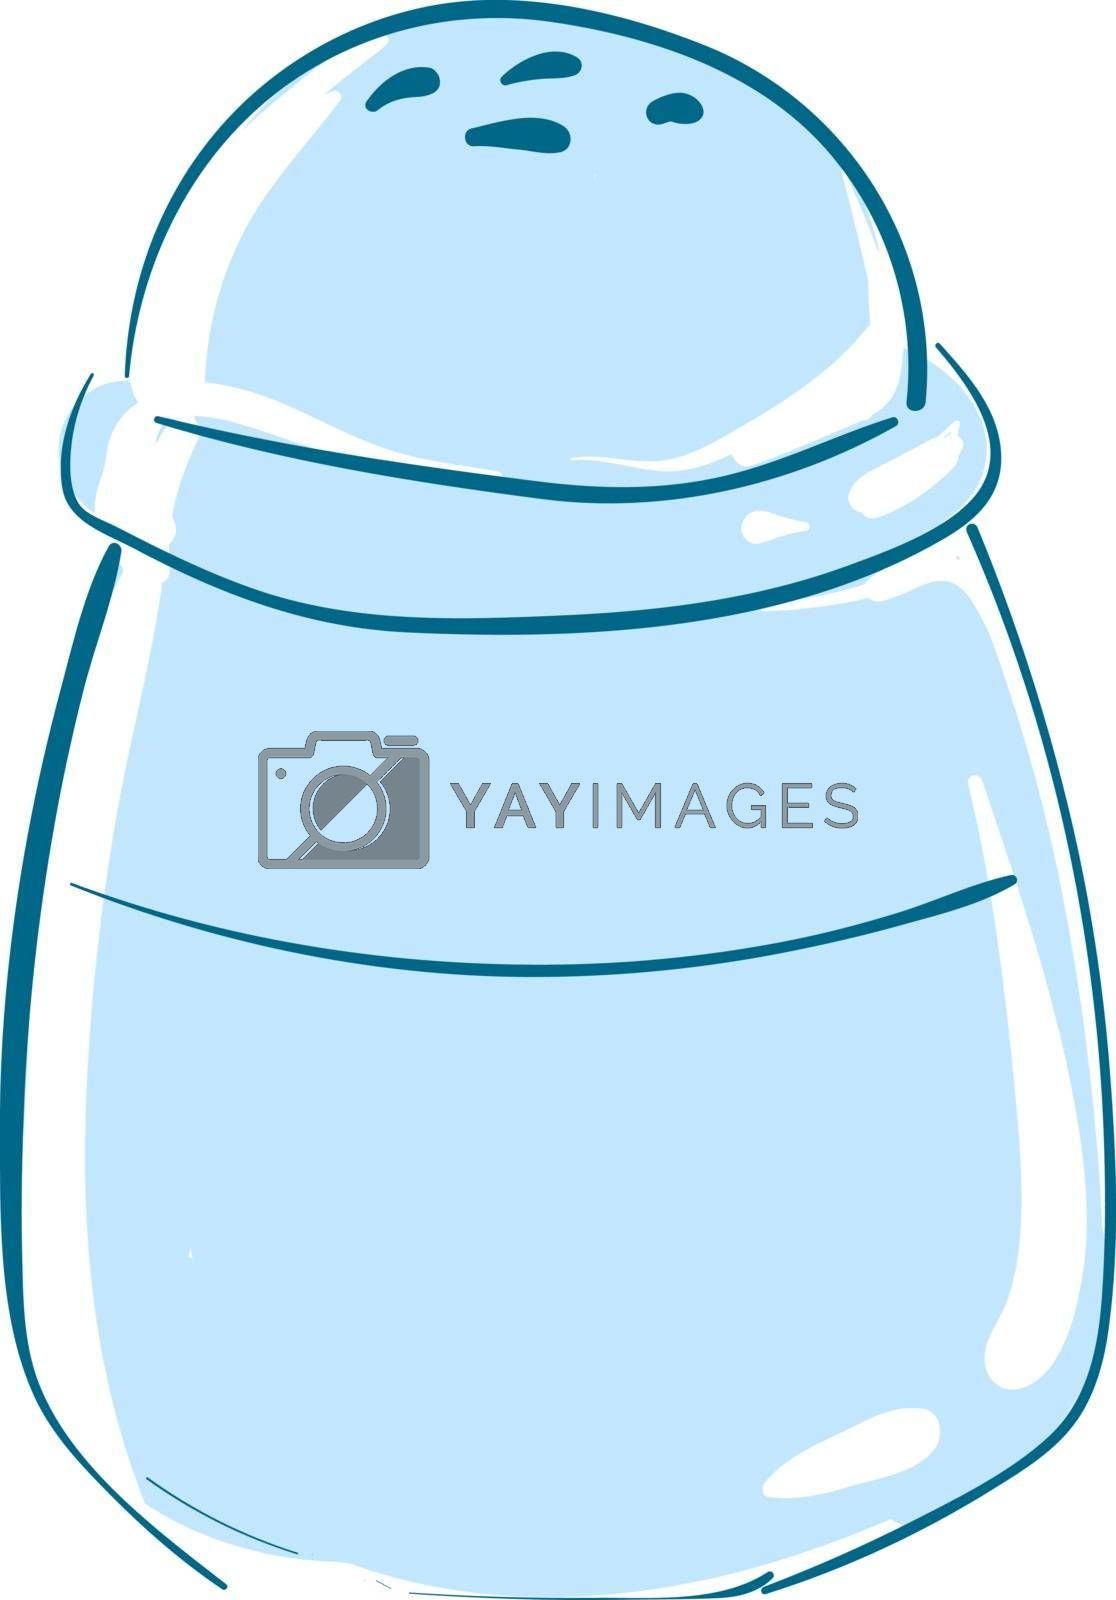 Royalty free image of Clipart of blue-colored salt shaker vector or color illustration by Morphart